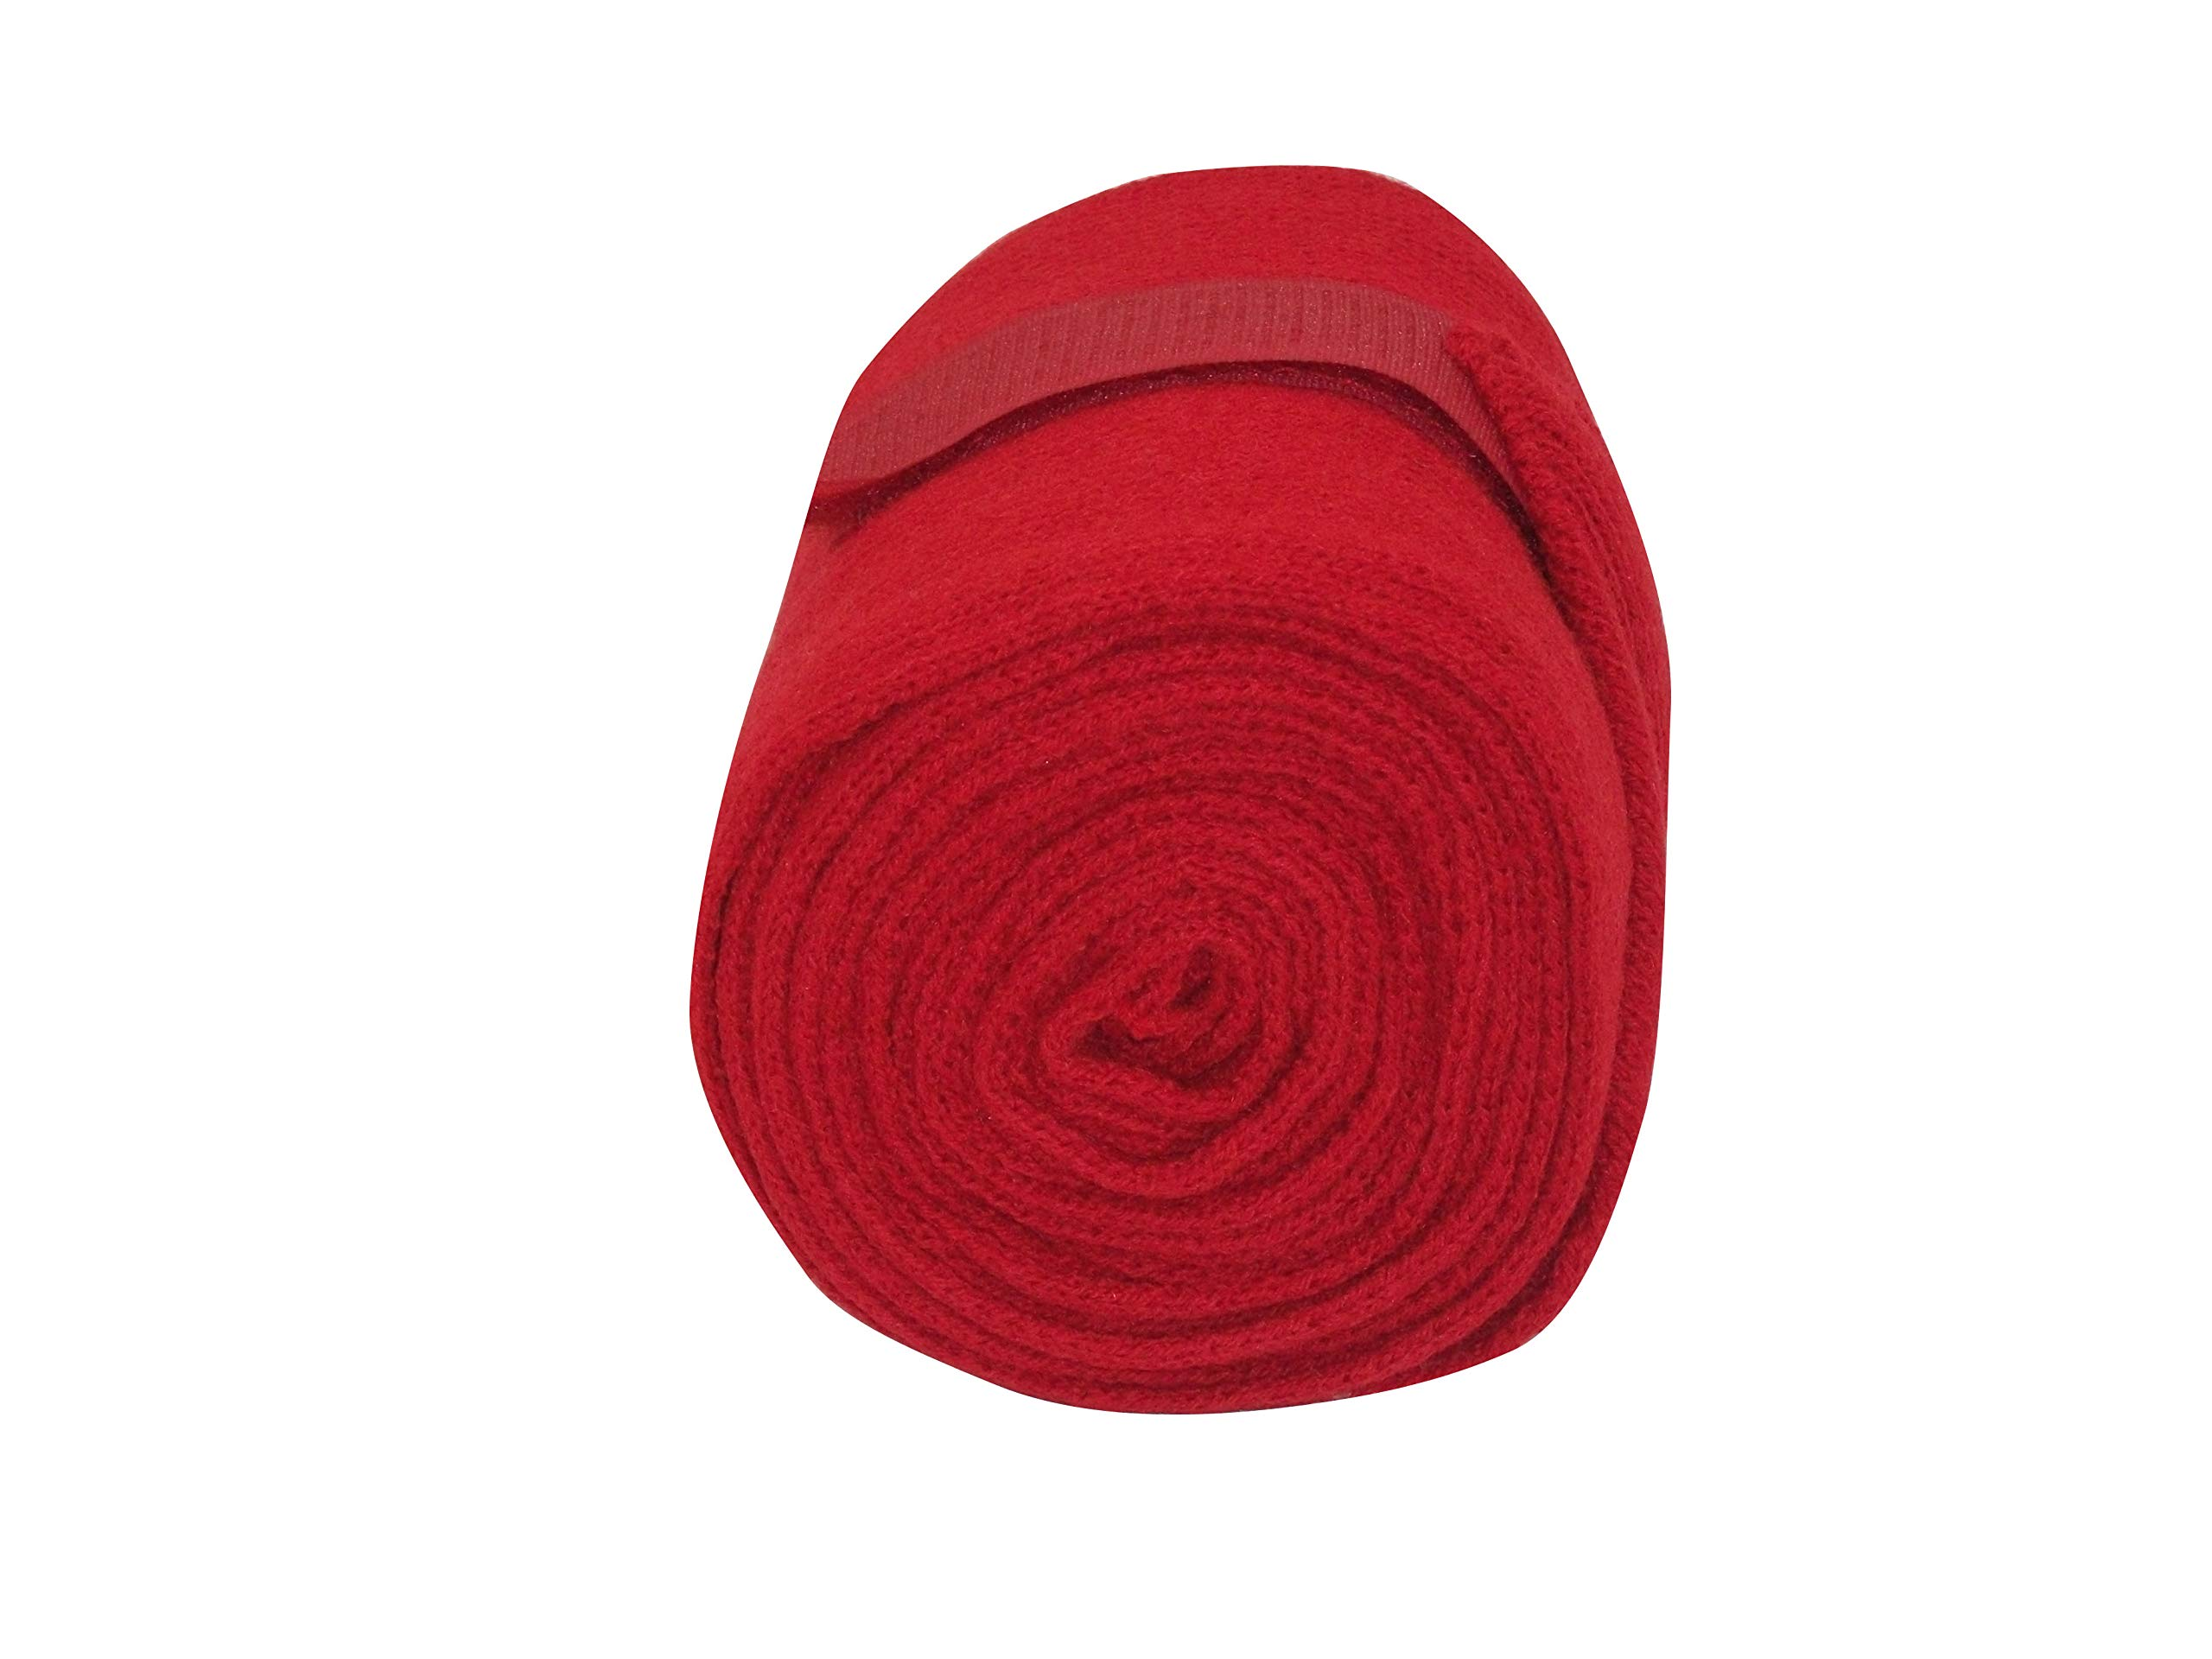 Protack Stable/travel Bandages Knitted Red x 4 Pack